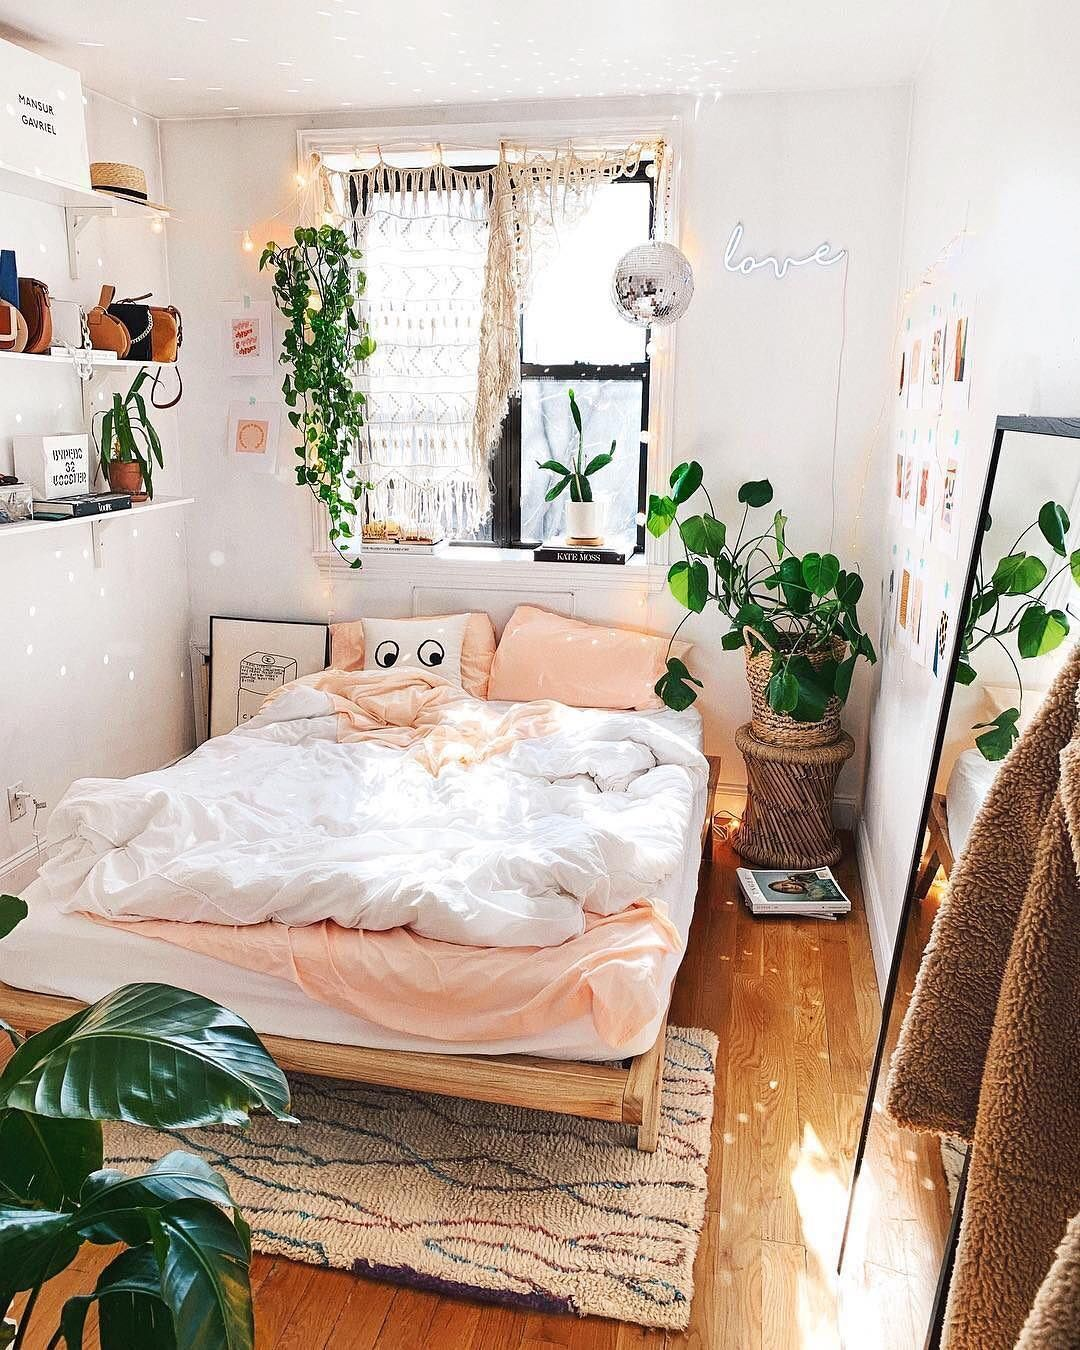 "Urban Outfitters on Instagram: ""🌞👌 #UOHome @viktoria ..."